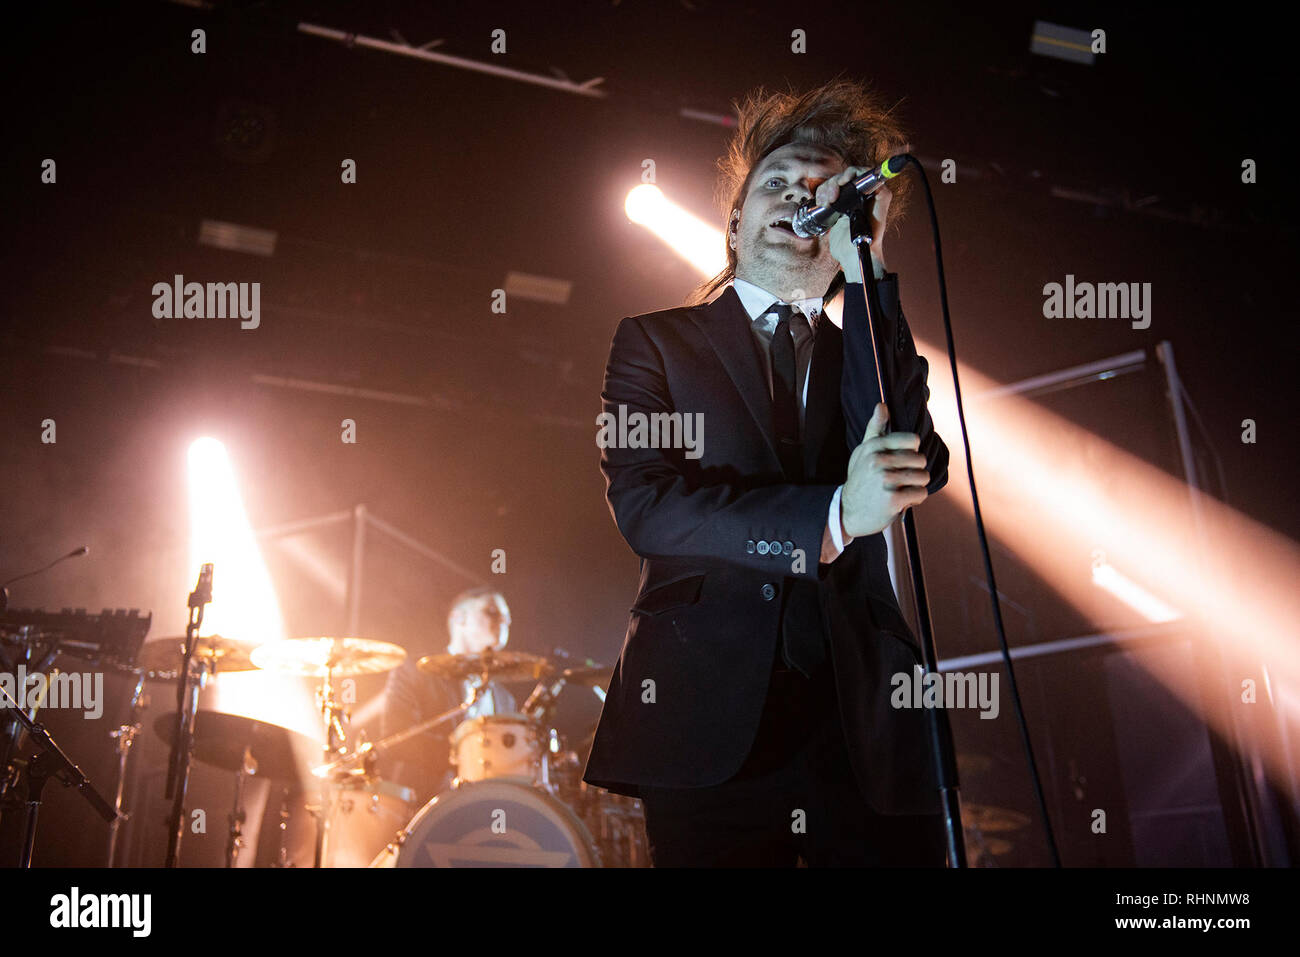 Manchester, UK. 03rd February 2018. Chris Batten, Rou Reynolds, Rob Rolfe and Rory Clewlow of Enter Shikari  perform at the Manchester Academy on their Stop The Clocks UK tour, Manchester 2018-02-03 Credit: Gary Mather/Alamy Live News - Stock Image